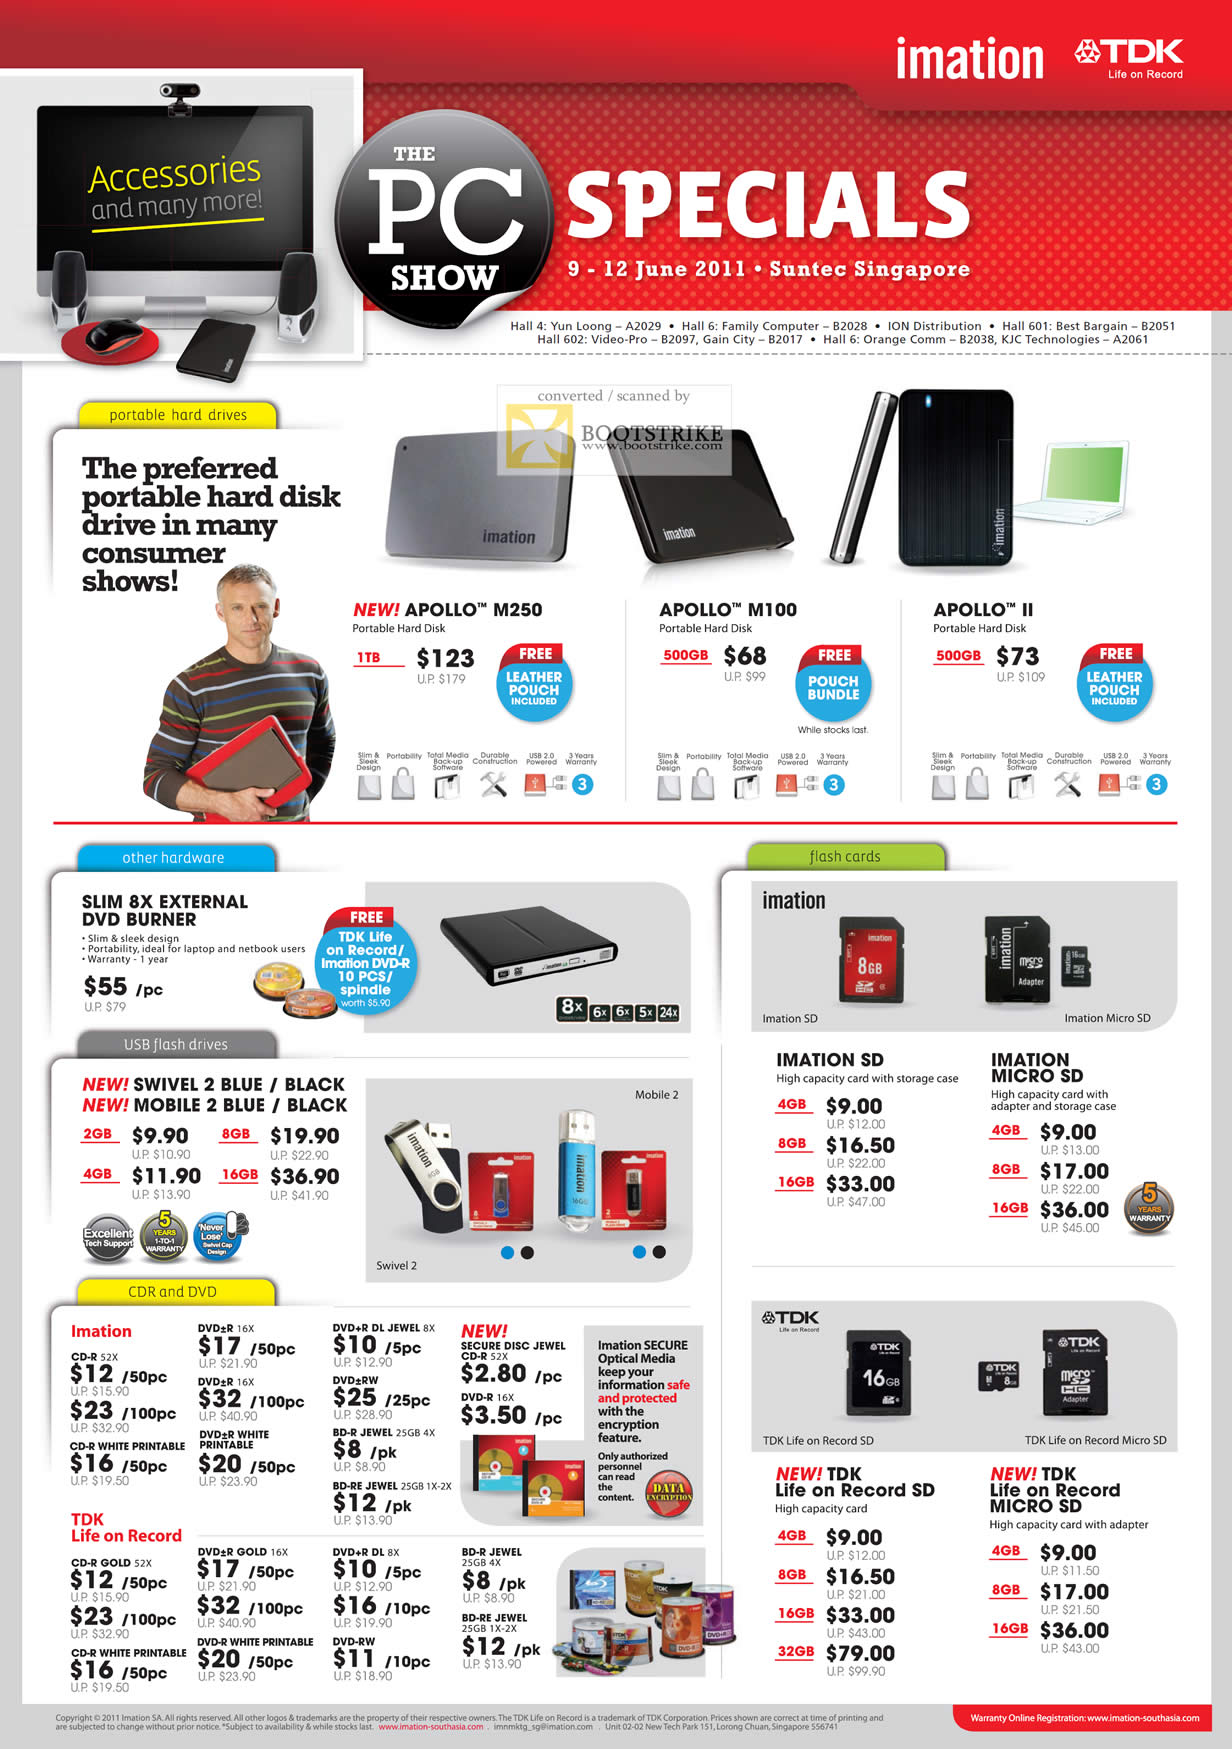 PC Show 2011 price list image brochure of Imation TDK External Storage Apollo M250 M100 II USB Flash Drive Swivel 2 Mobile Memory MicroSD SD CD-R DVD-R